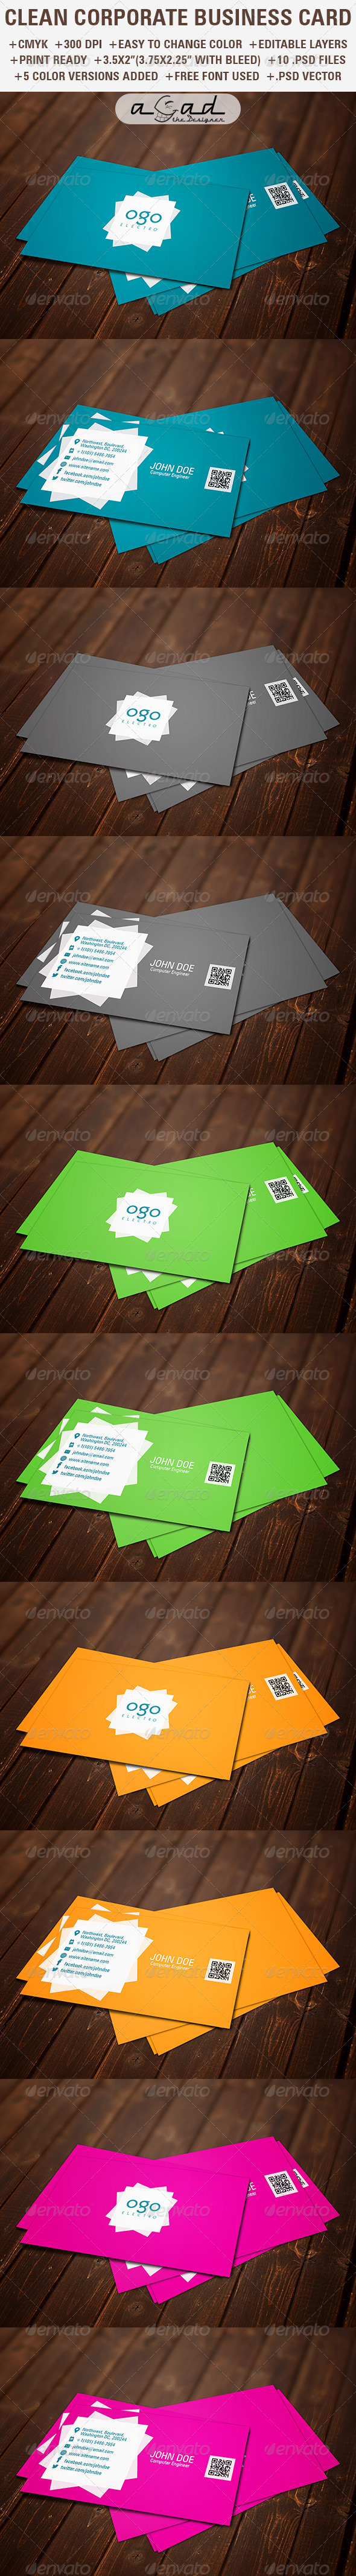 Corporate business card template sn 7 corporate business corporate business card template sn 7 reheart Image collections